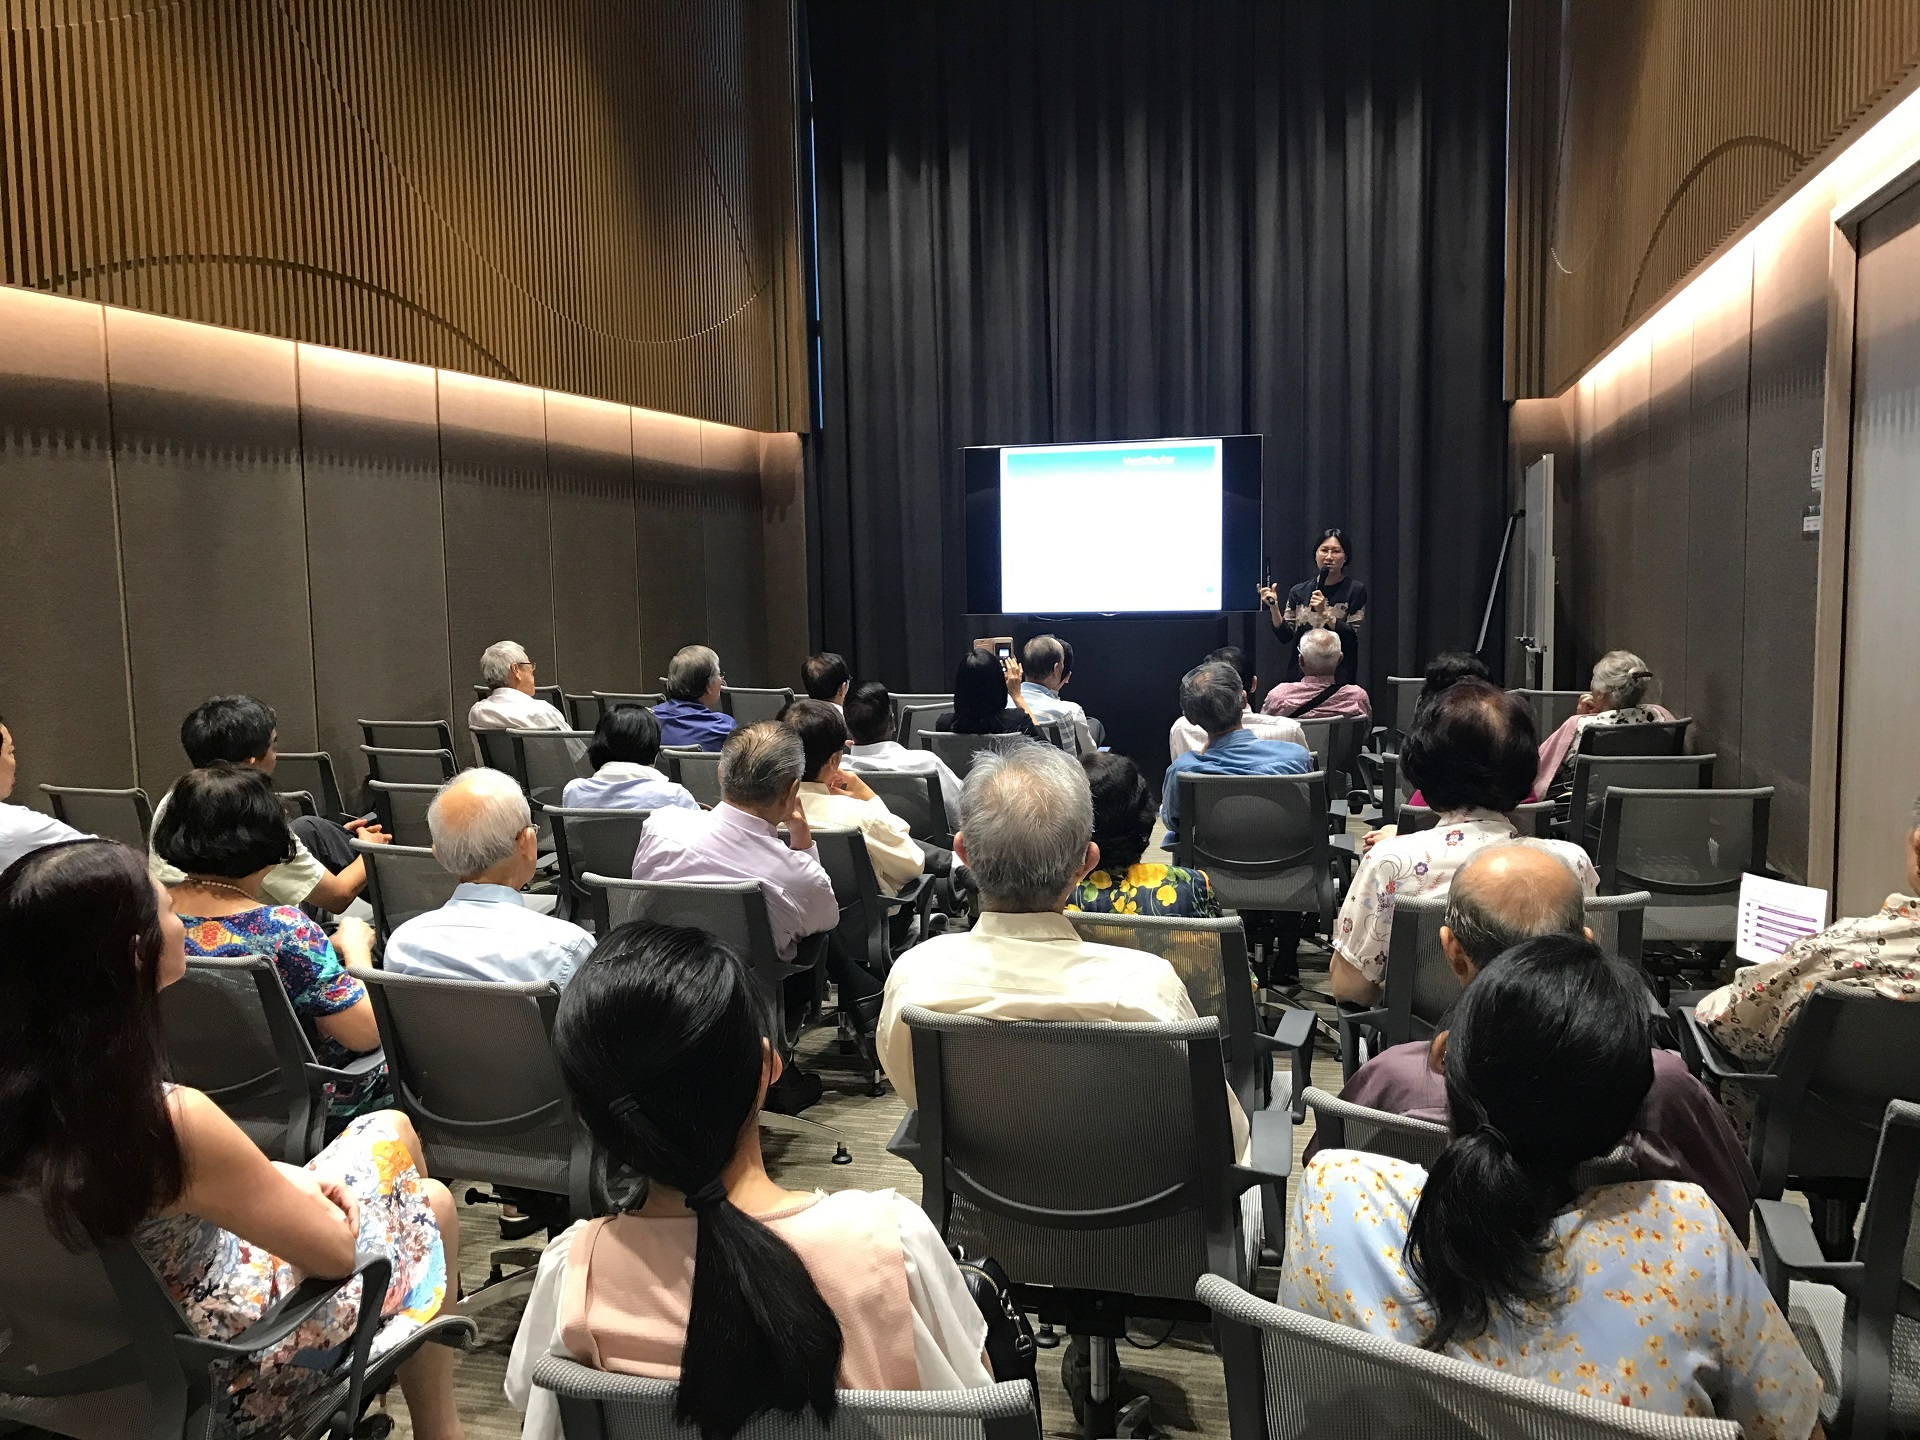 Medical doctors listening attentively to Dr Lim Hsueh Yee Lynne during her Continuing Medical Education Lecture at Farrer Park Hospital on 3 August 2017.